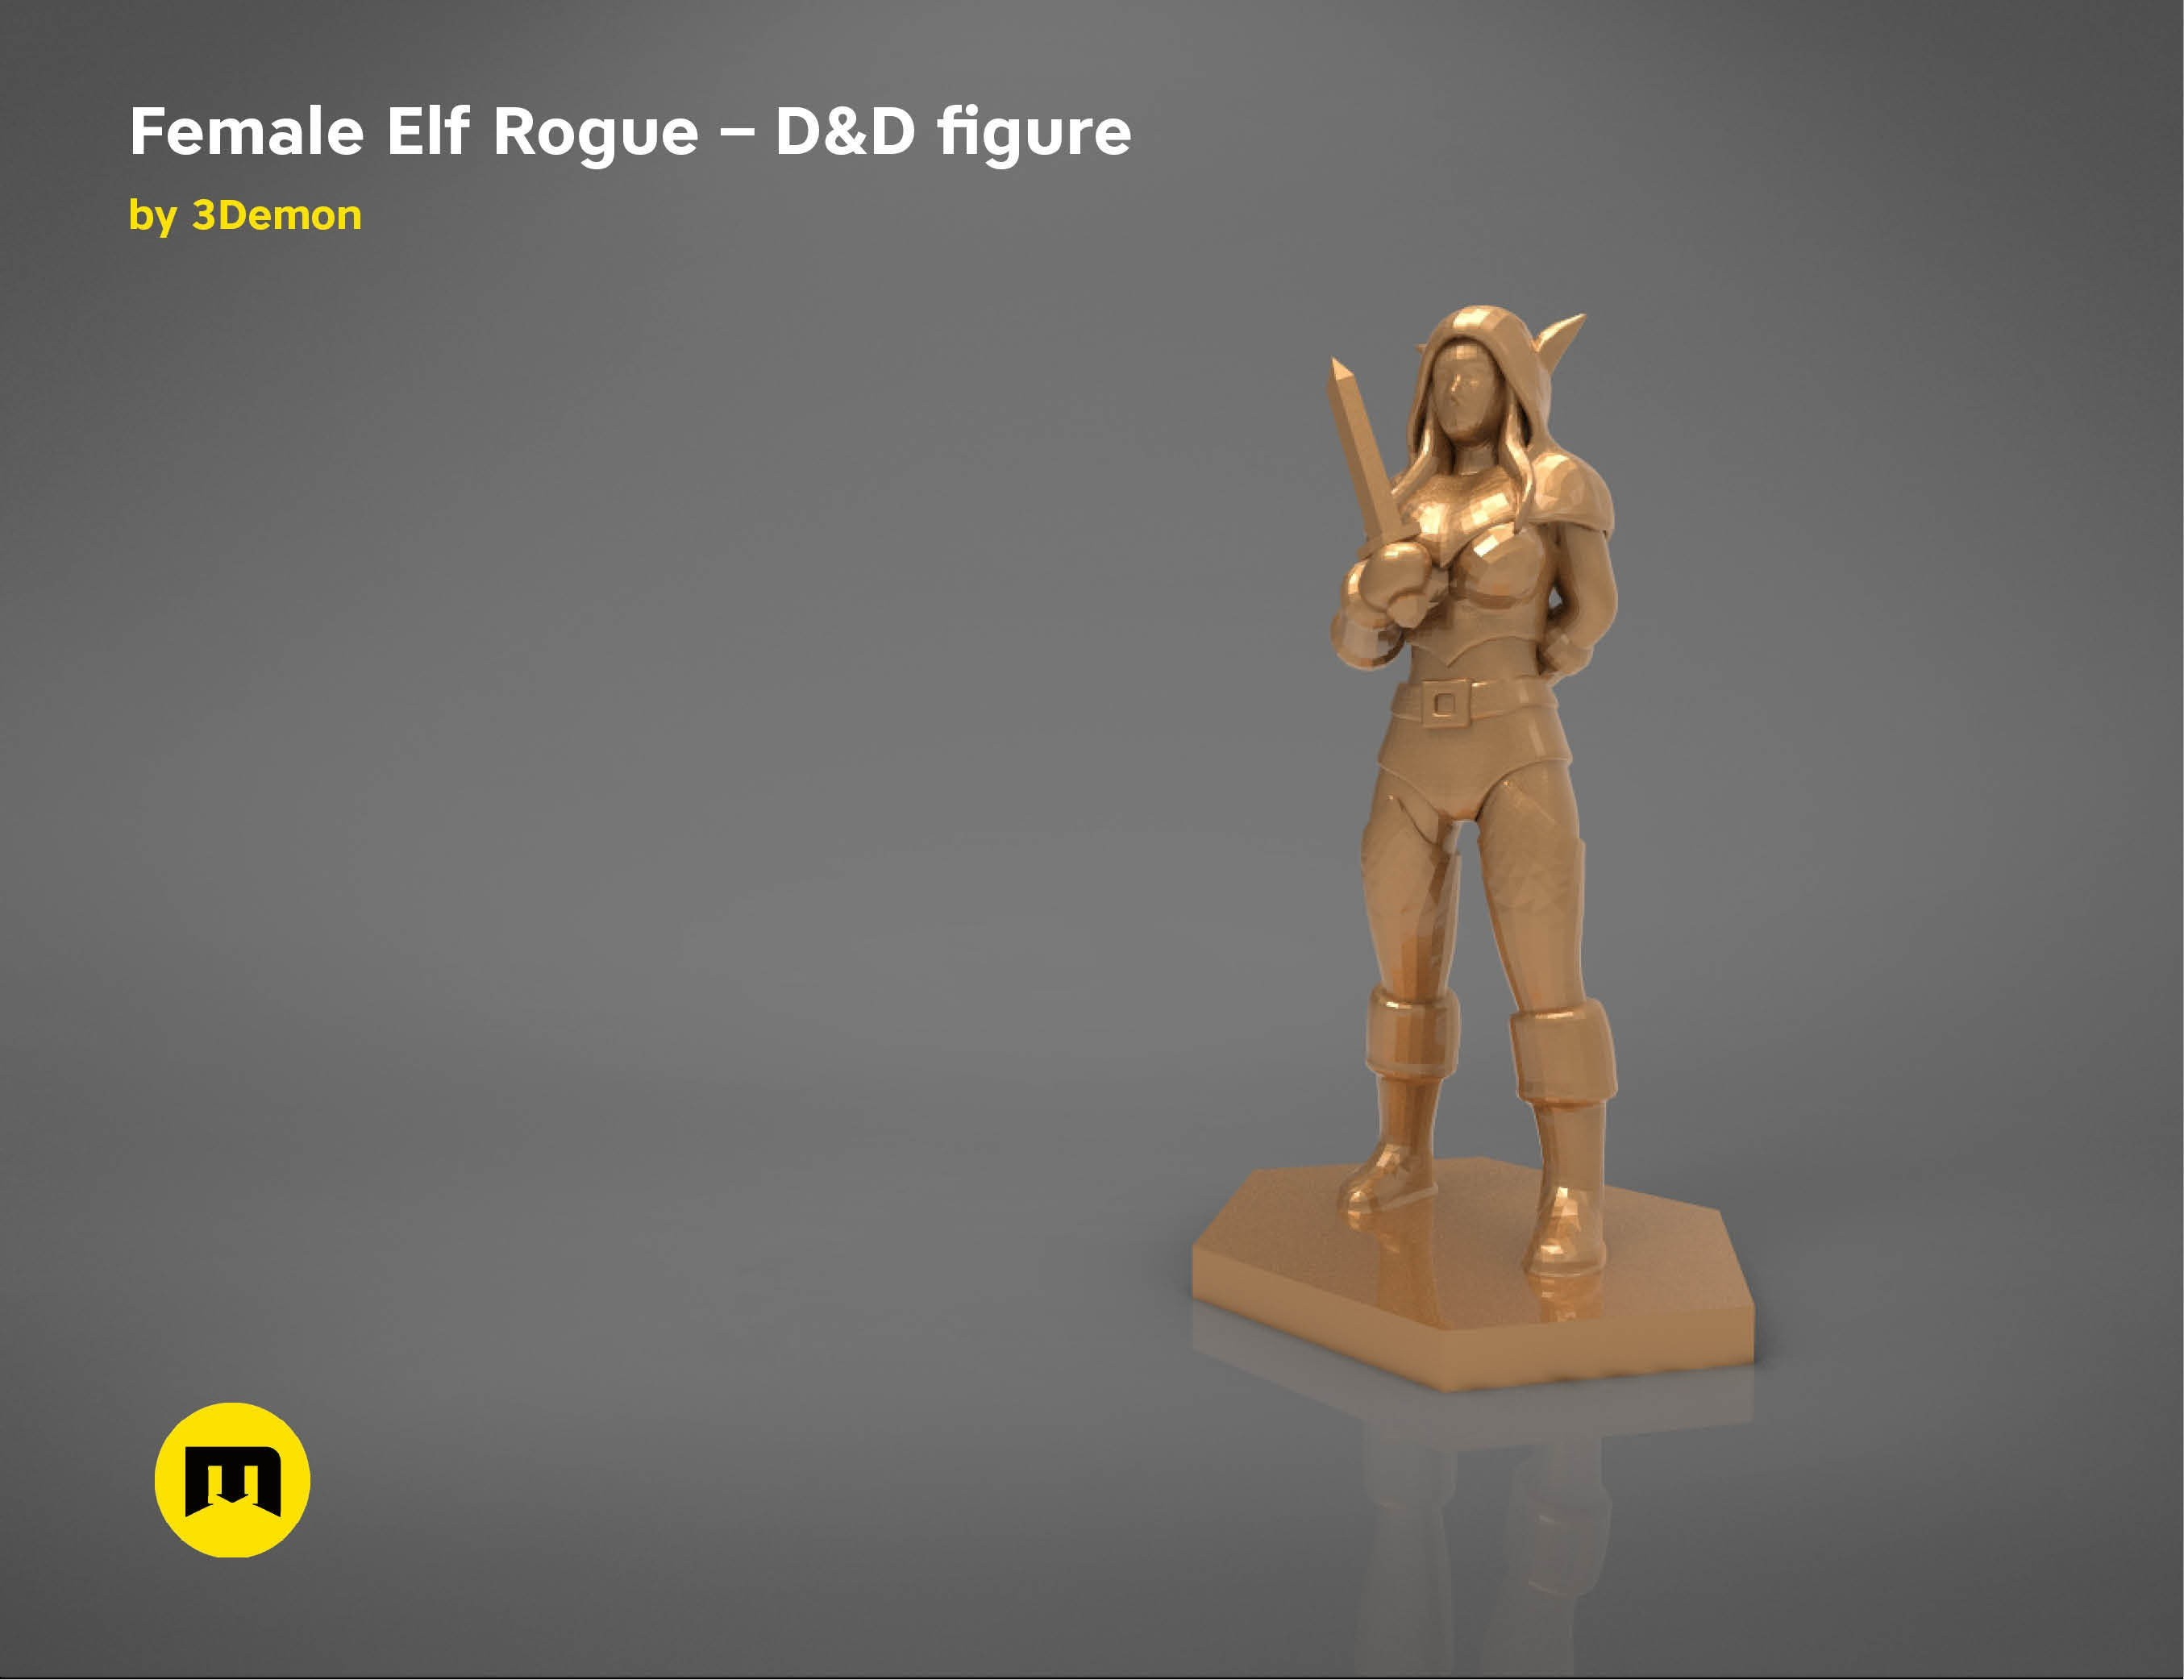 characters7.jpg Download STL file ELF ROGUE FEMALE CHARACTER GAME FIGURES 3D print model • 3D printer object, 3D-mon